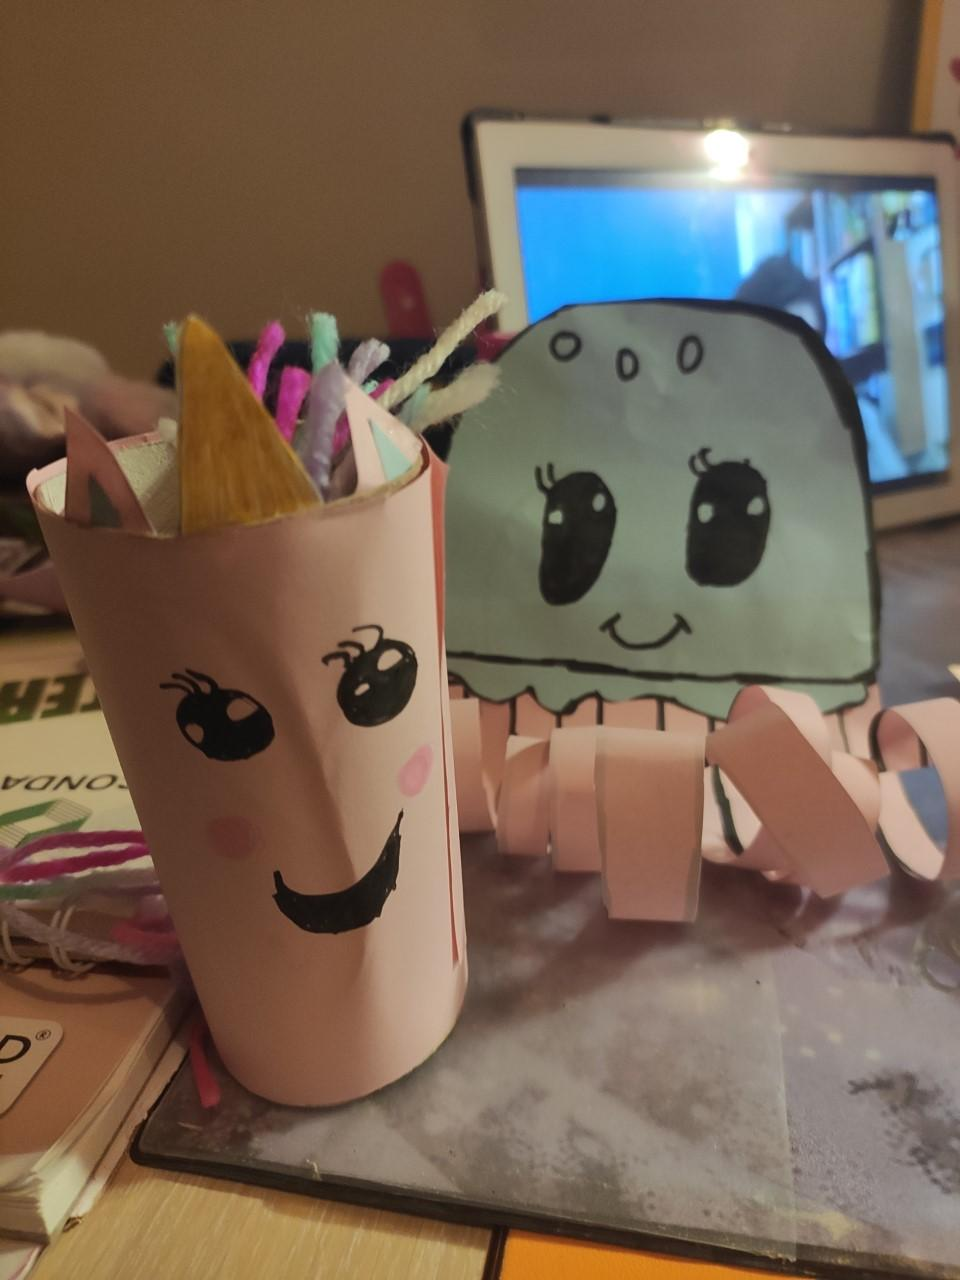 Mikaela (8) wanted to take a break from academic work to work on some crafts.